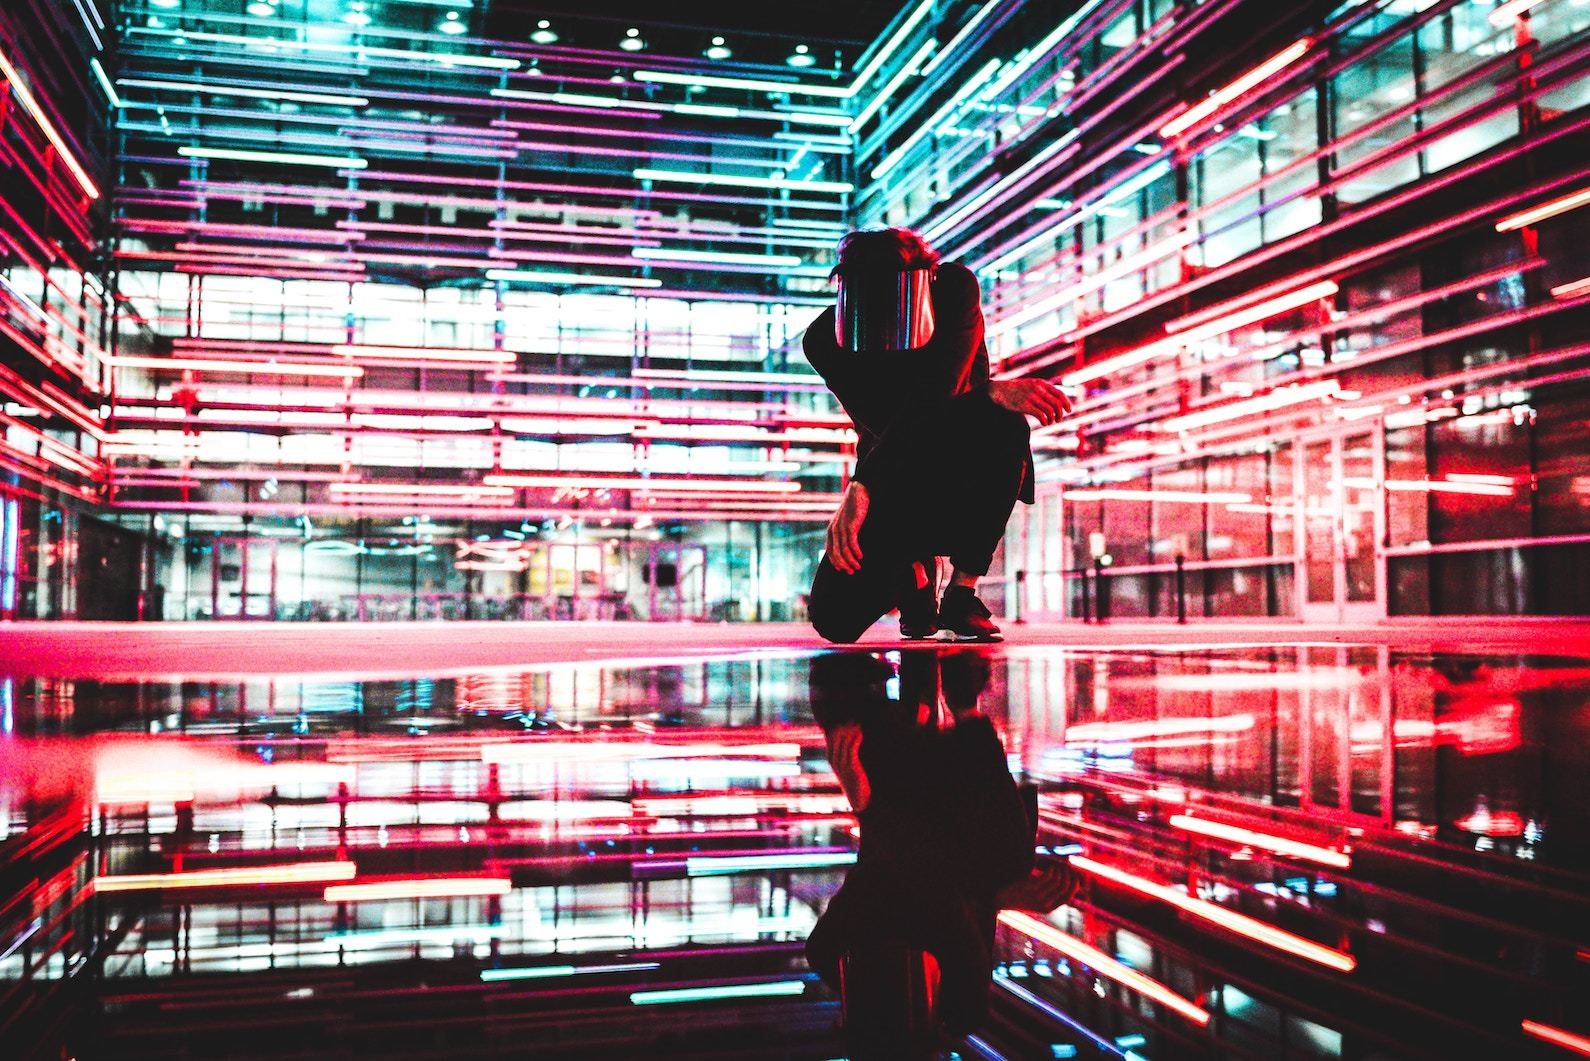 Person in black surrounded by neon